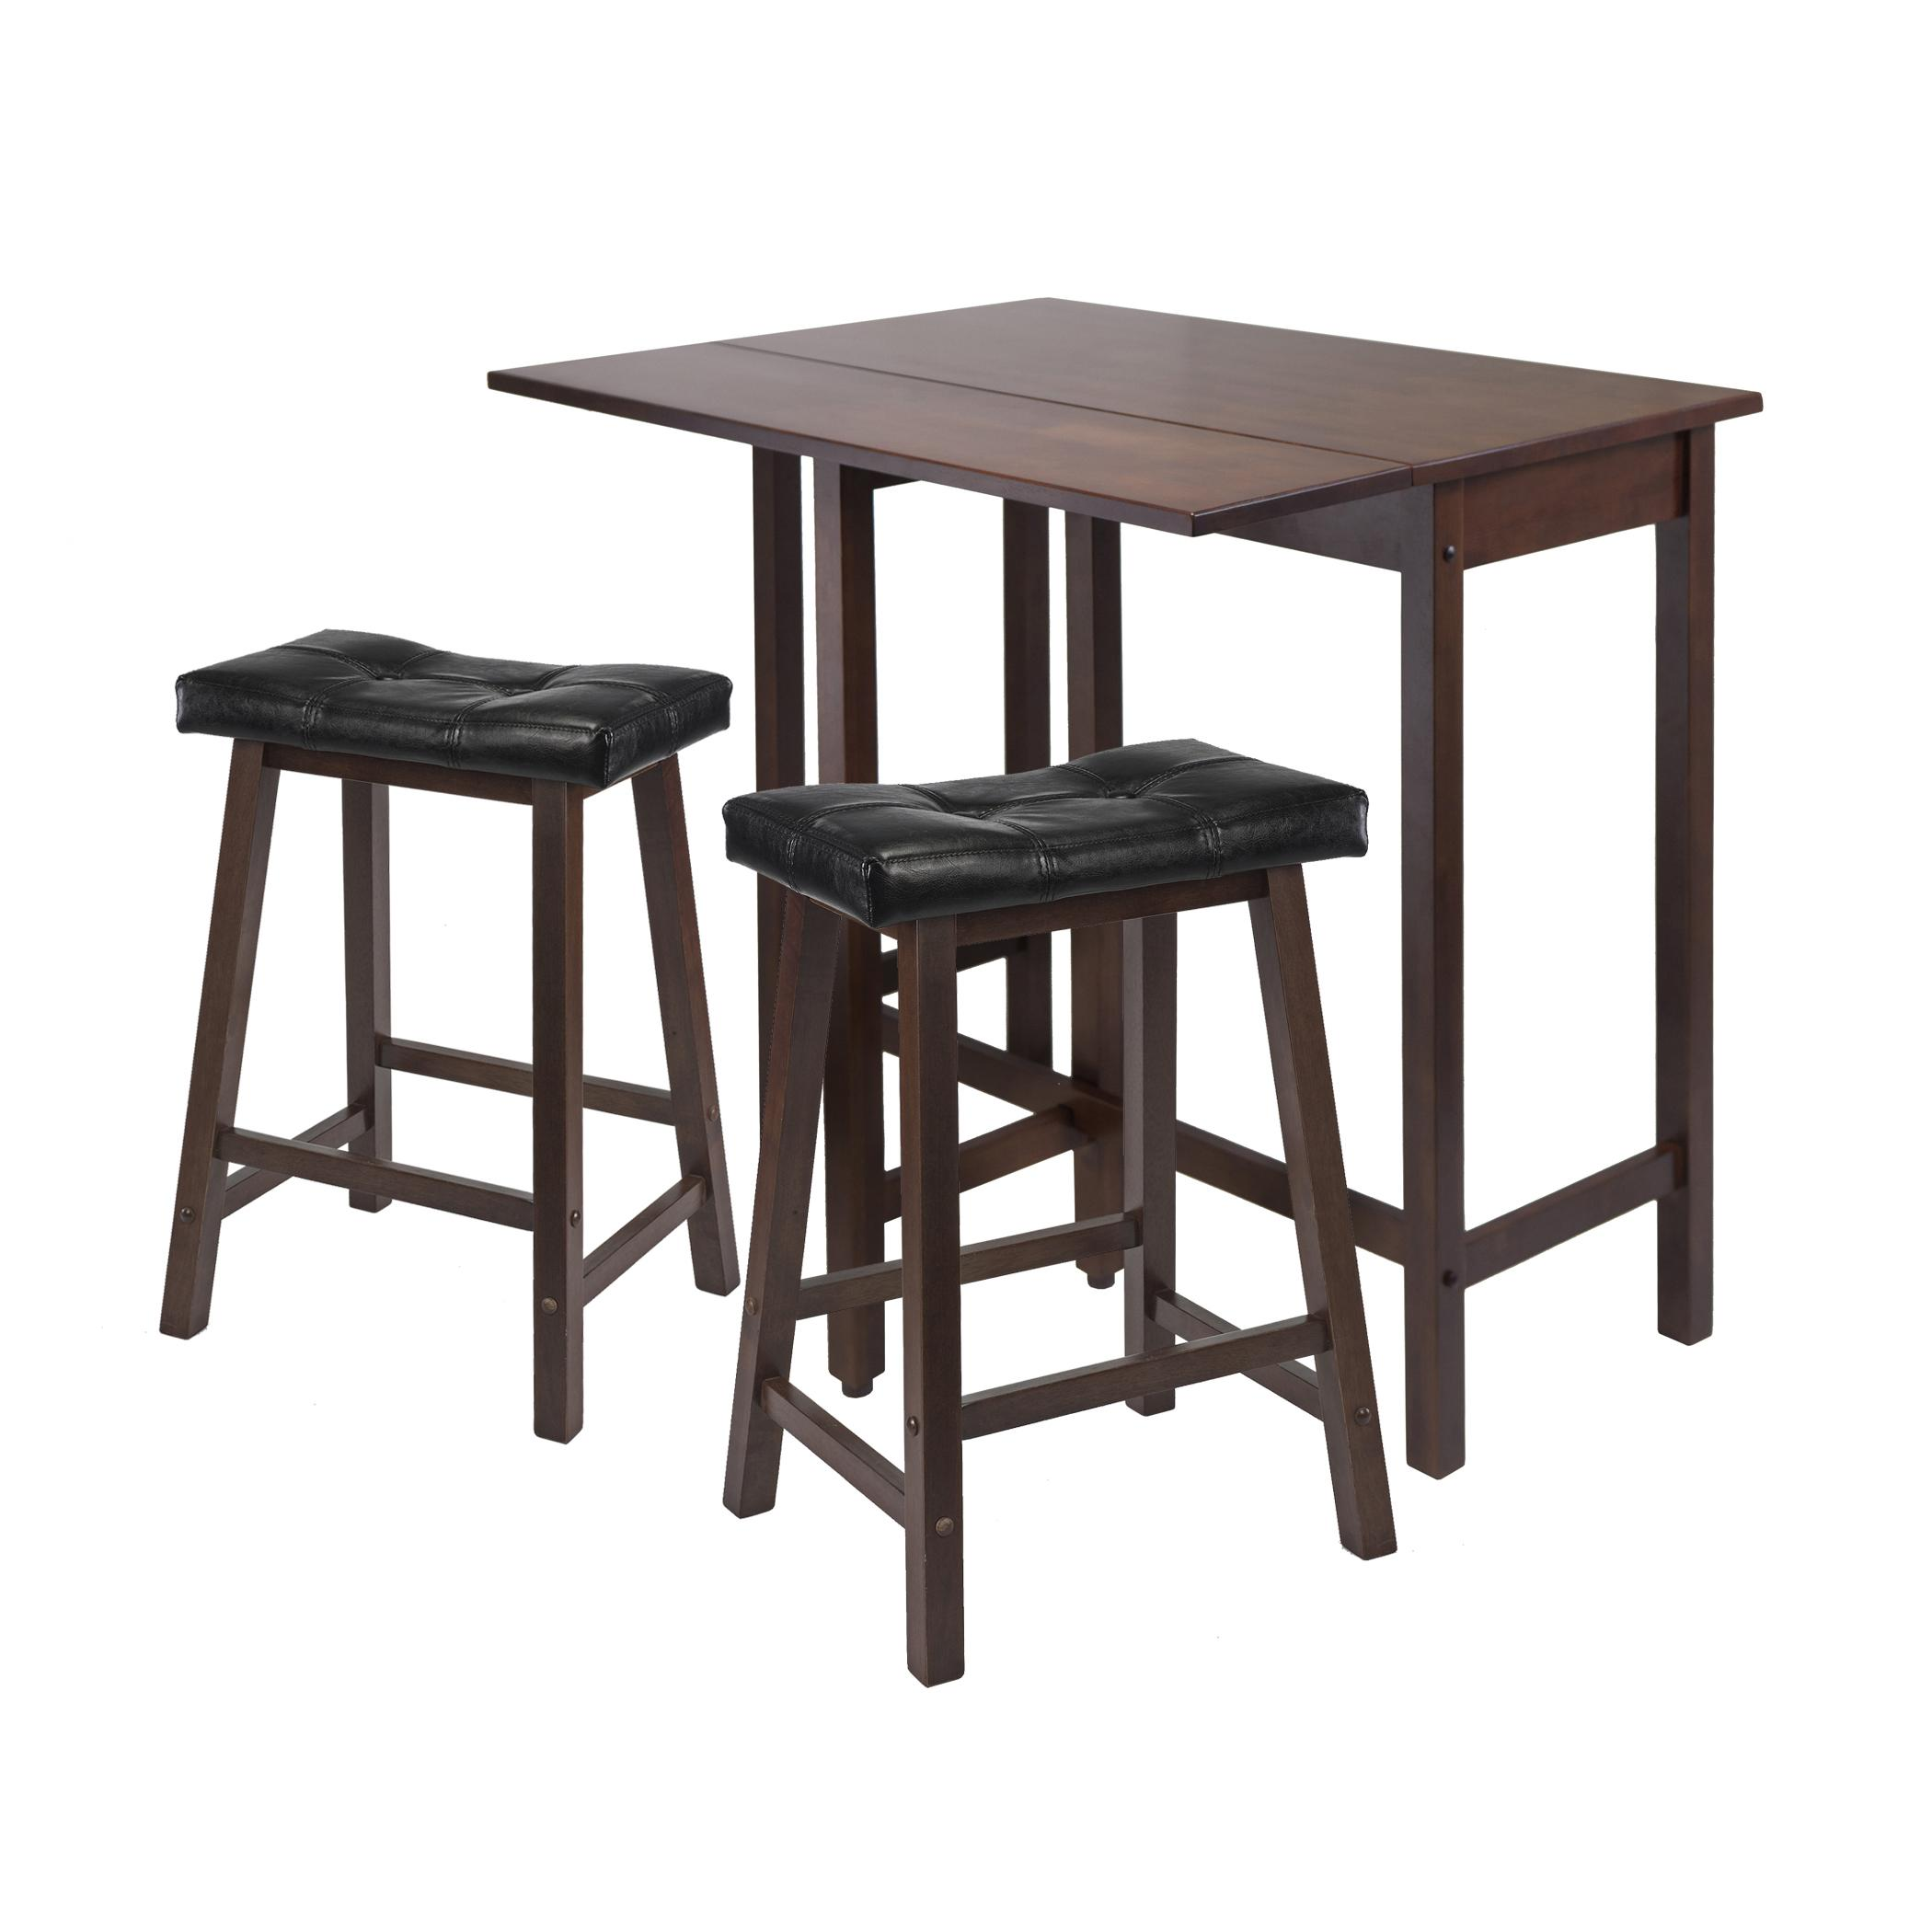 Amazon Winsome Lynnwood Drop Leaf Kitchen Table with 2